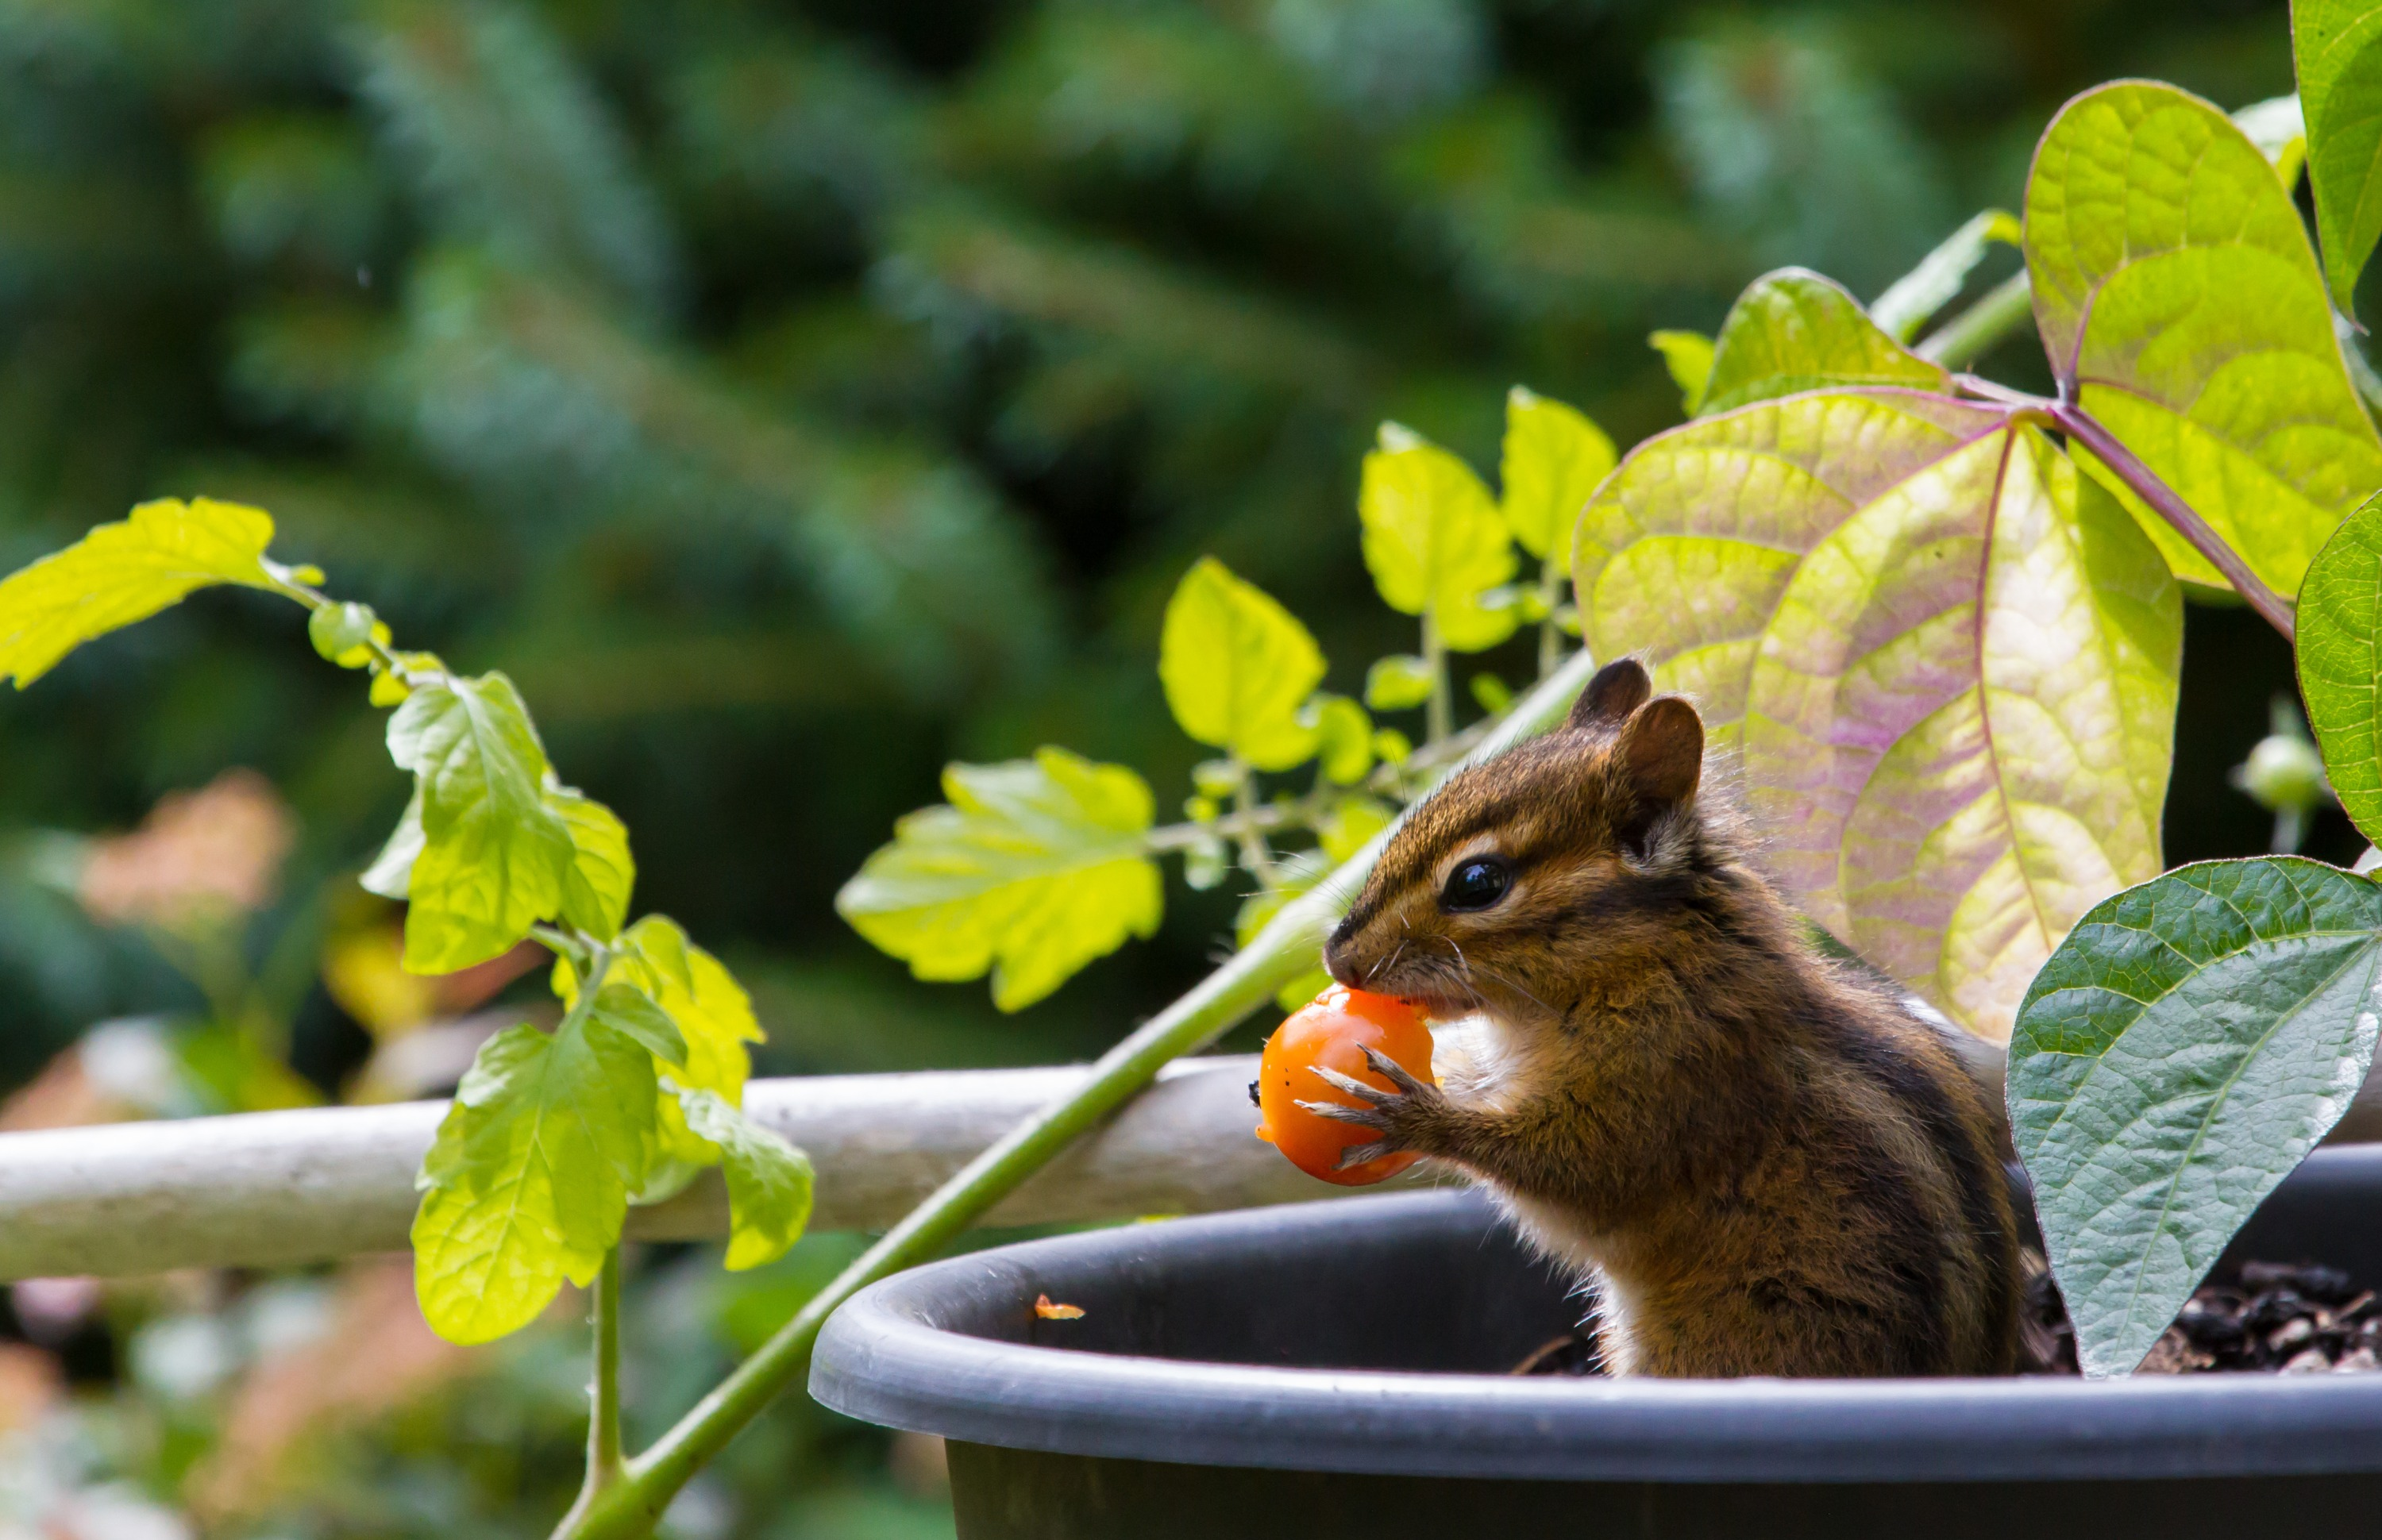 A chipmunk holding a small red tomato in a garden.